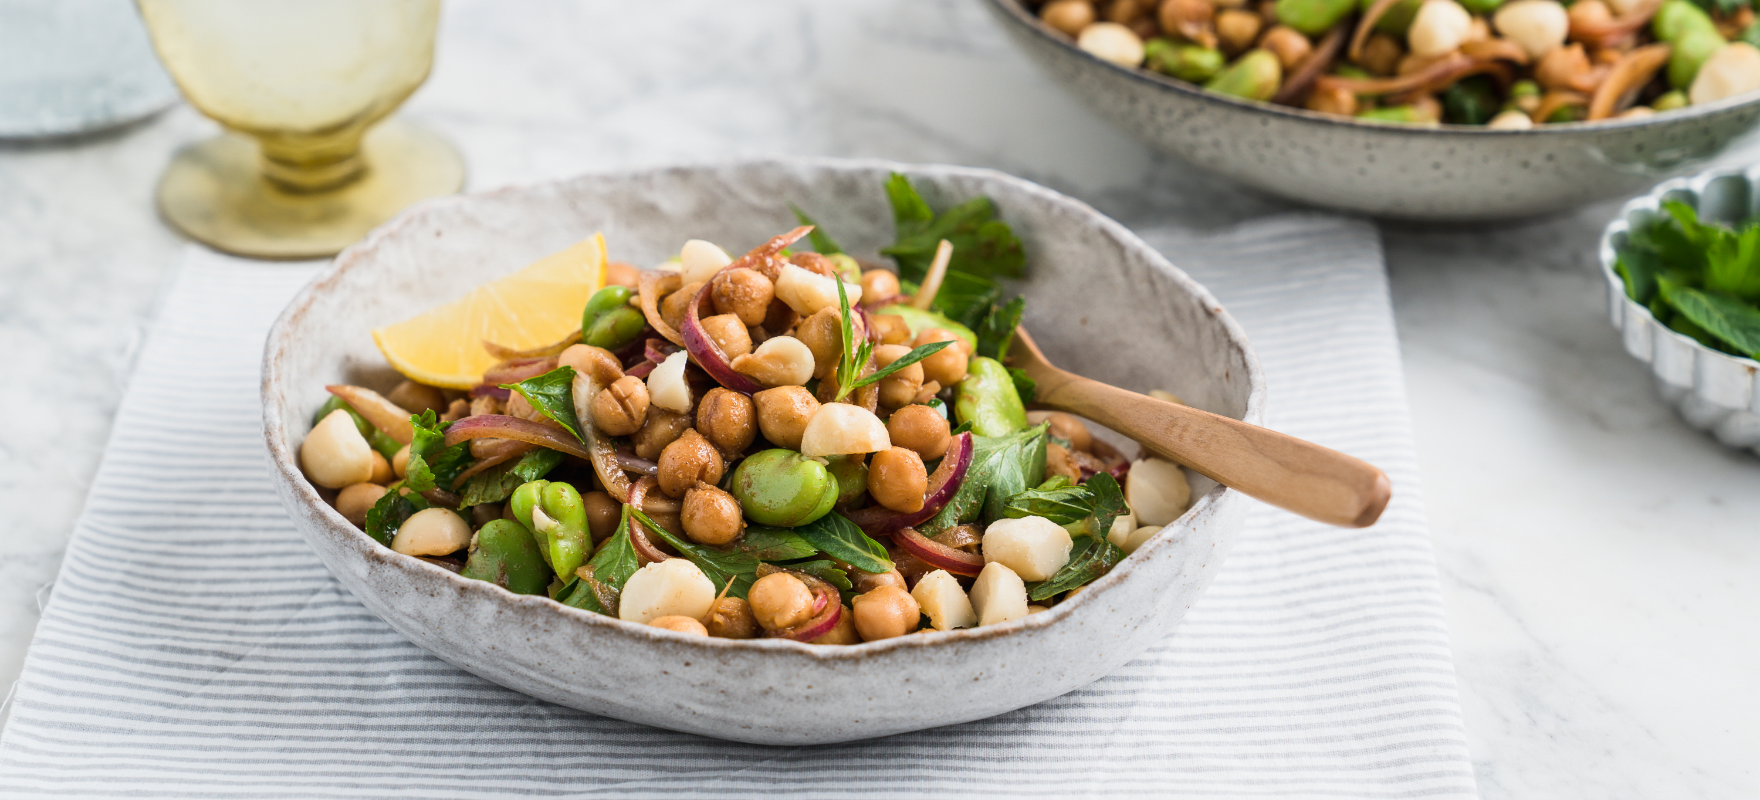 Chickpea and broad bean salad image 1